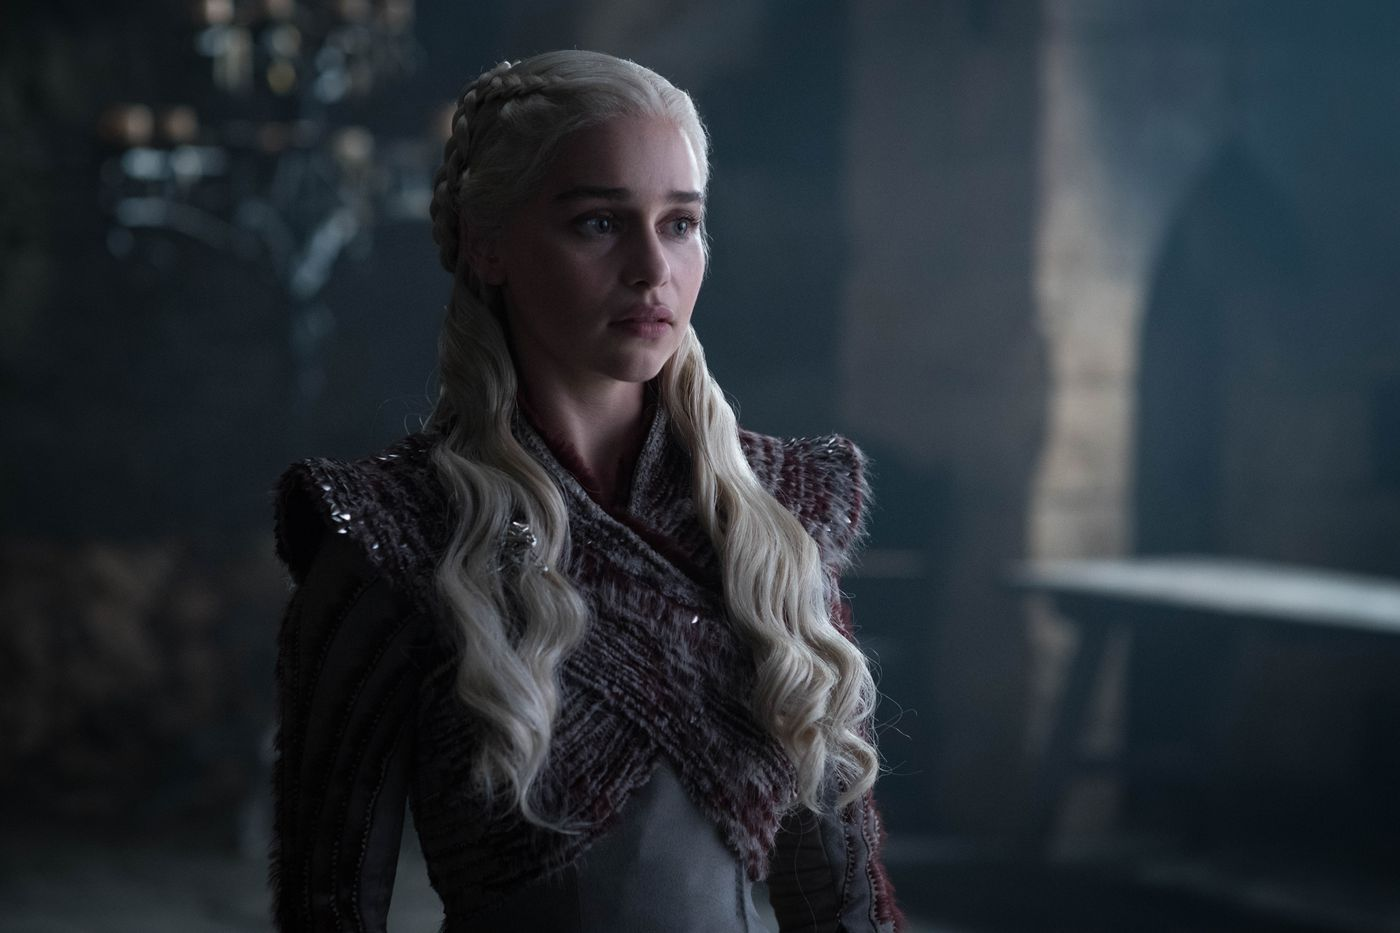 Game of Game of Thrones season 8 preview: meet the Verge